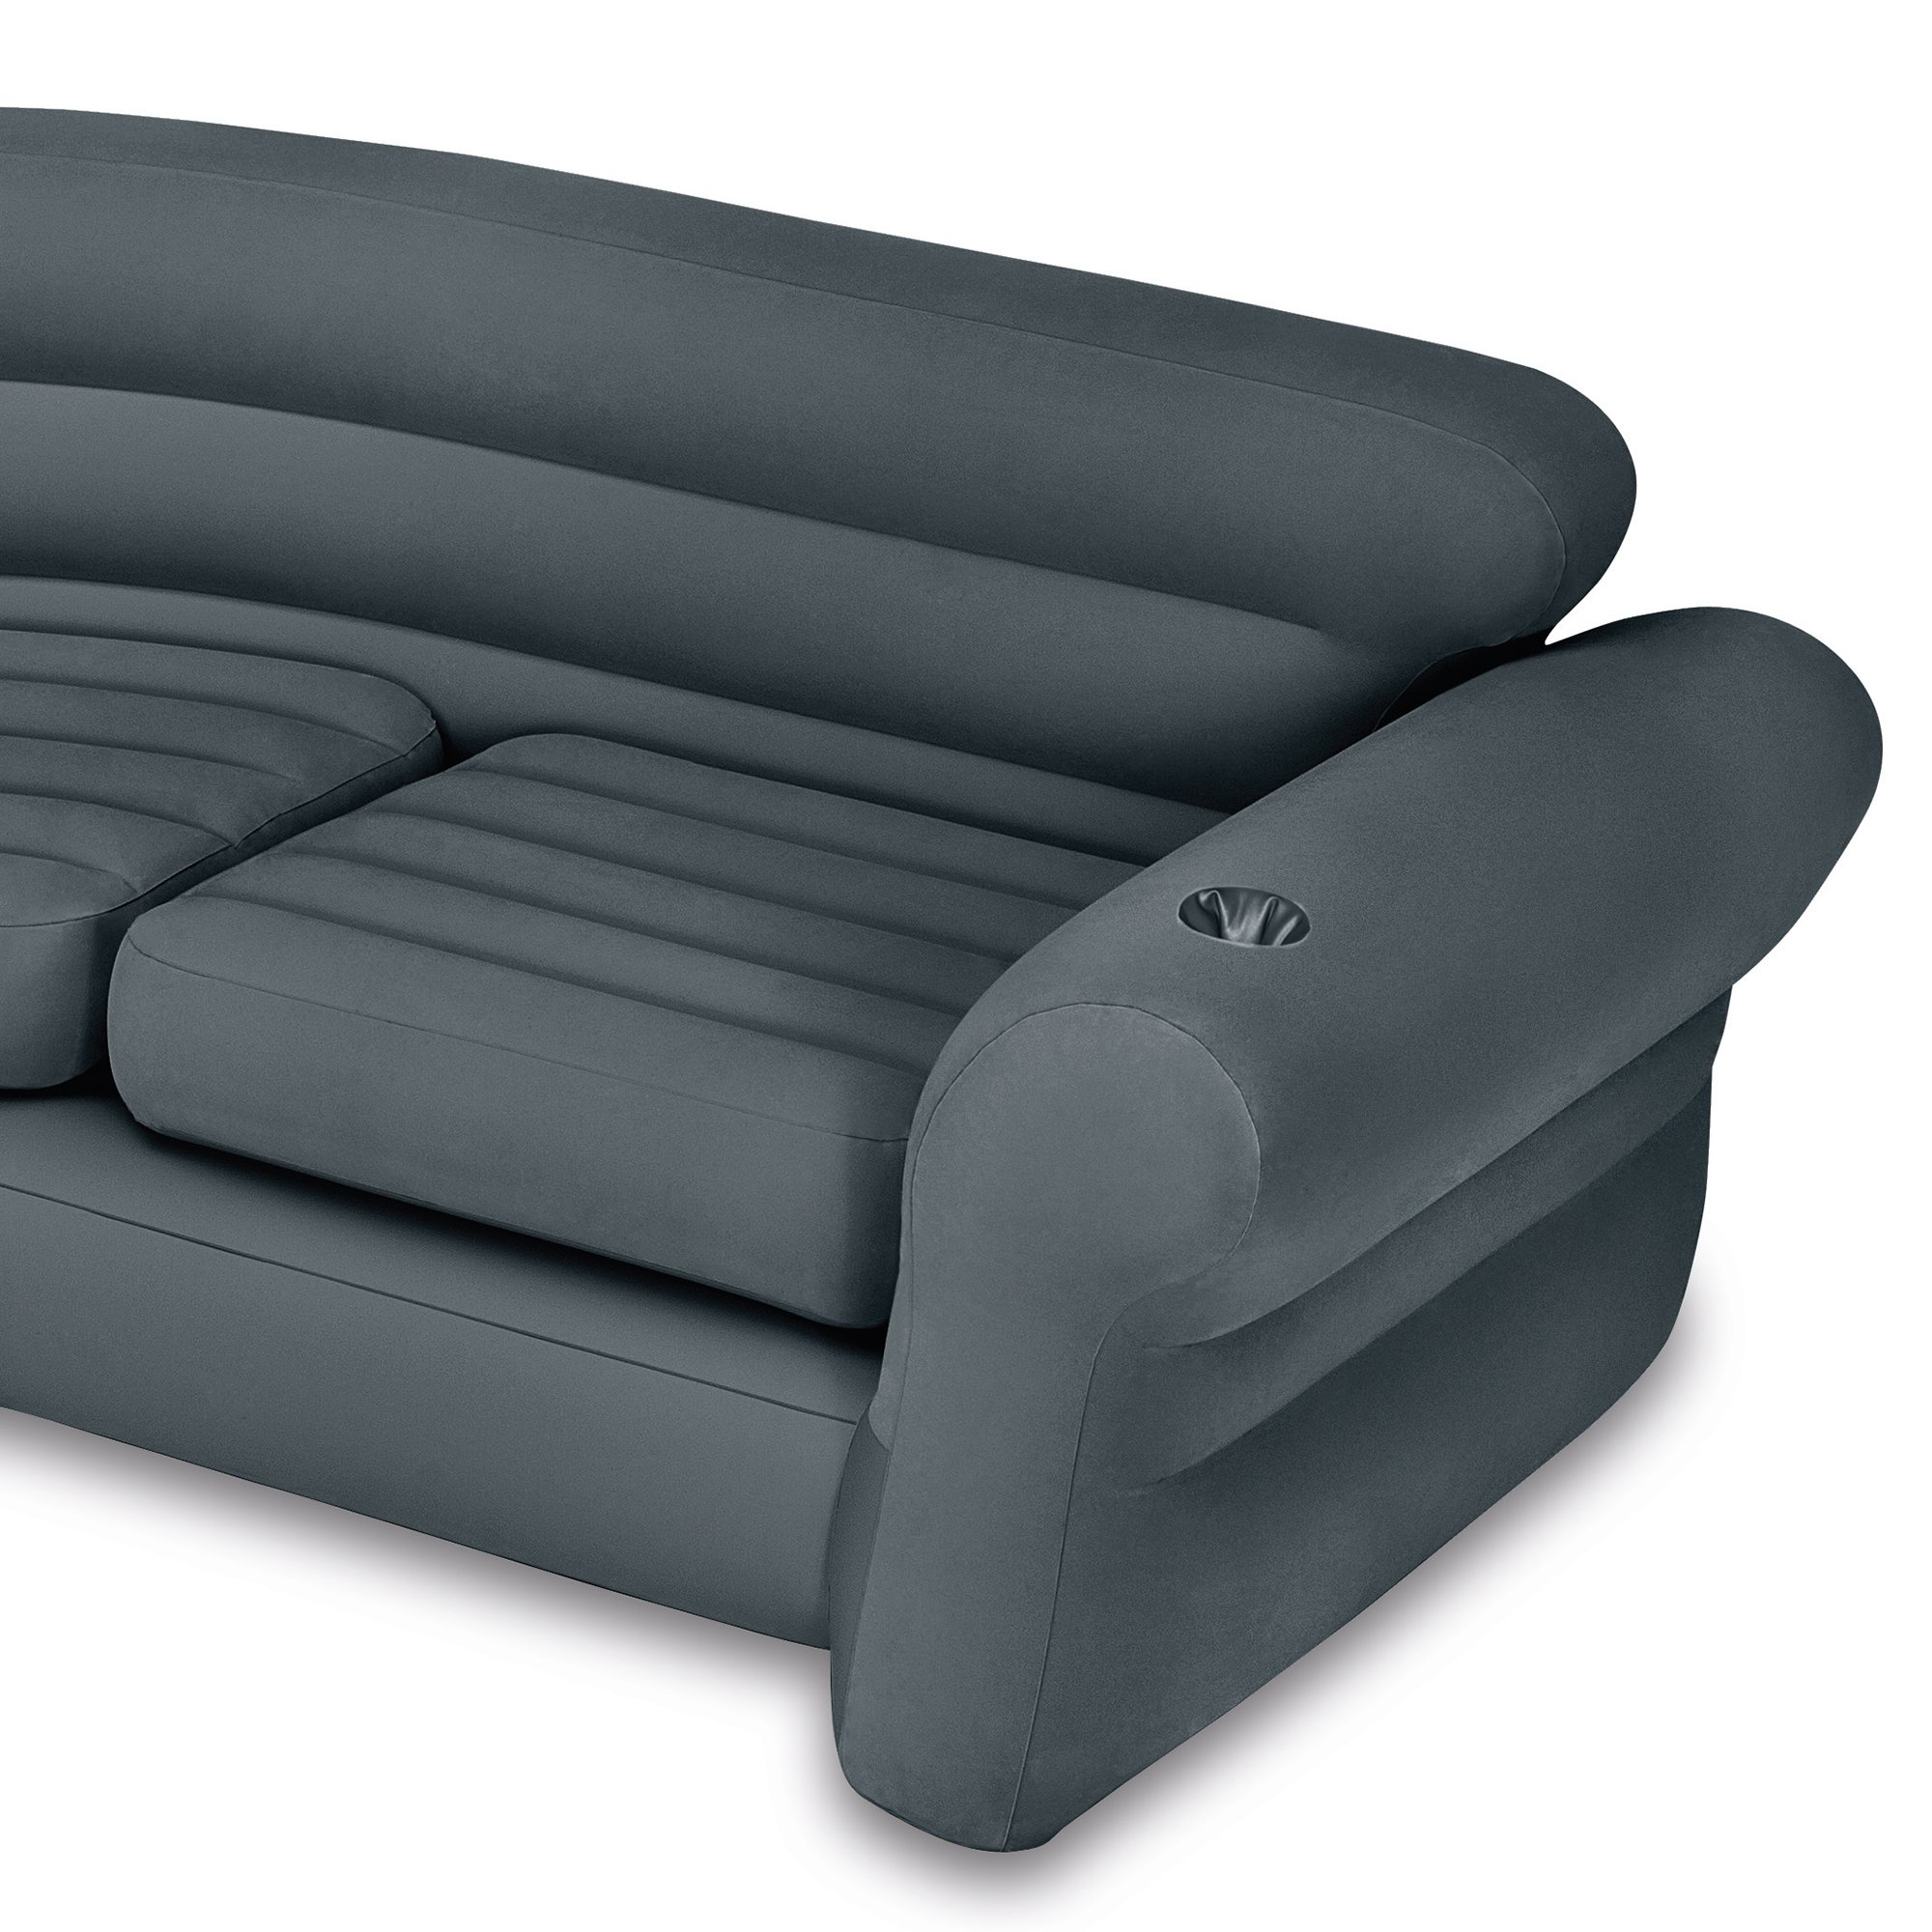 Retro Inflatable Sofa Intex Inflatable Corner Sectional Sofa W 120v Quick Fill Ac Electric Air Pump